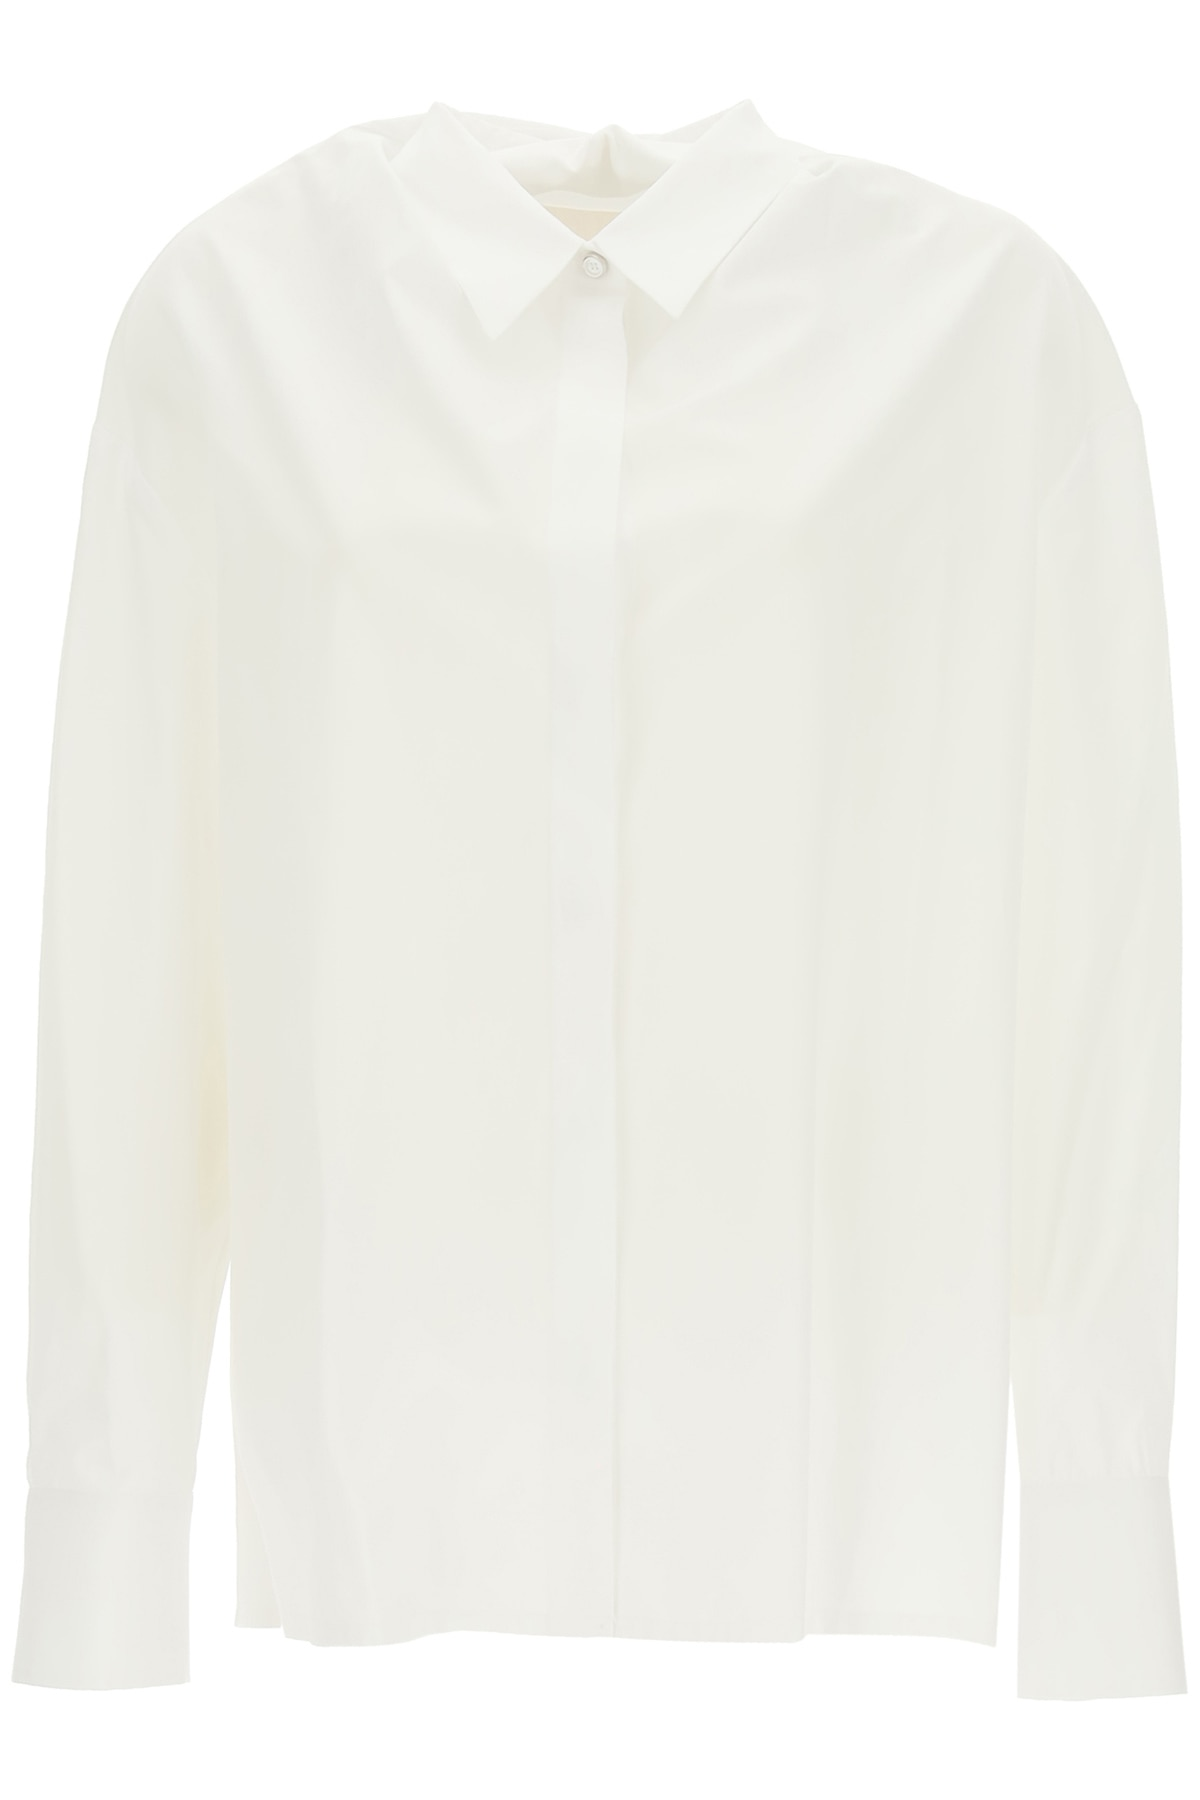 GIVENCHY OVERSIZED SHIRT WITH DRAPING 36 White Cotton